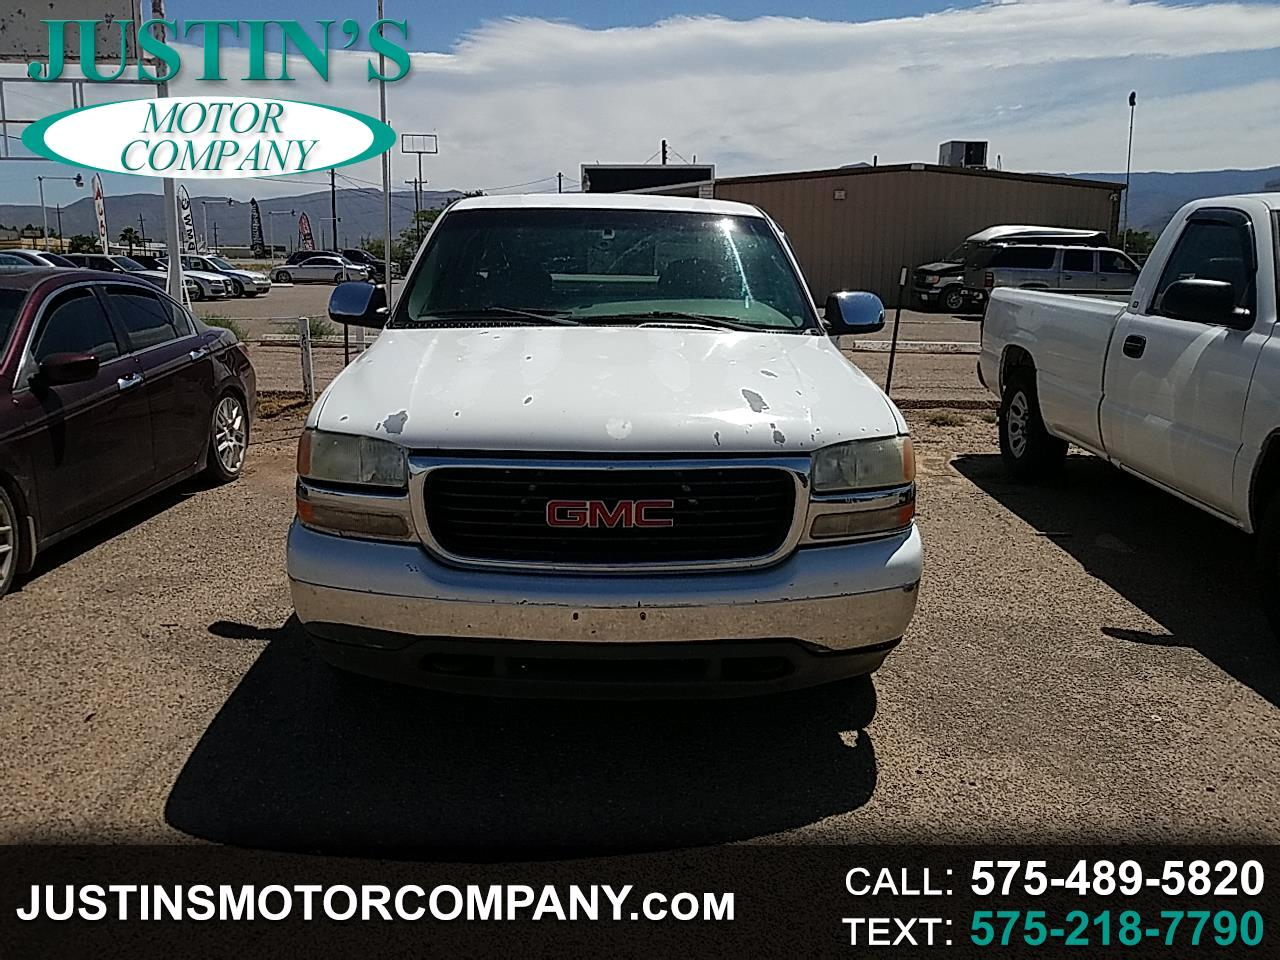 2000 GMC New Sierra 1500 4dr Ext Cab 143.5